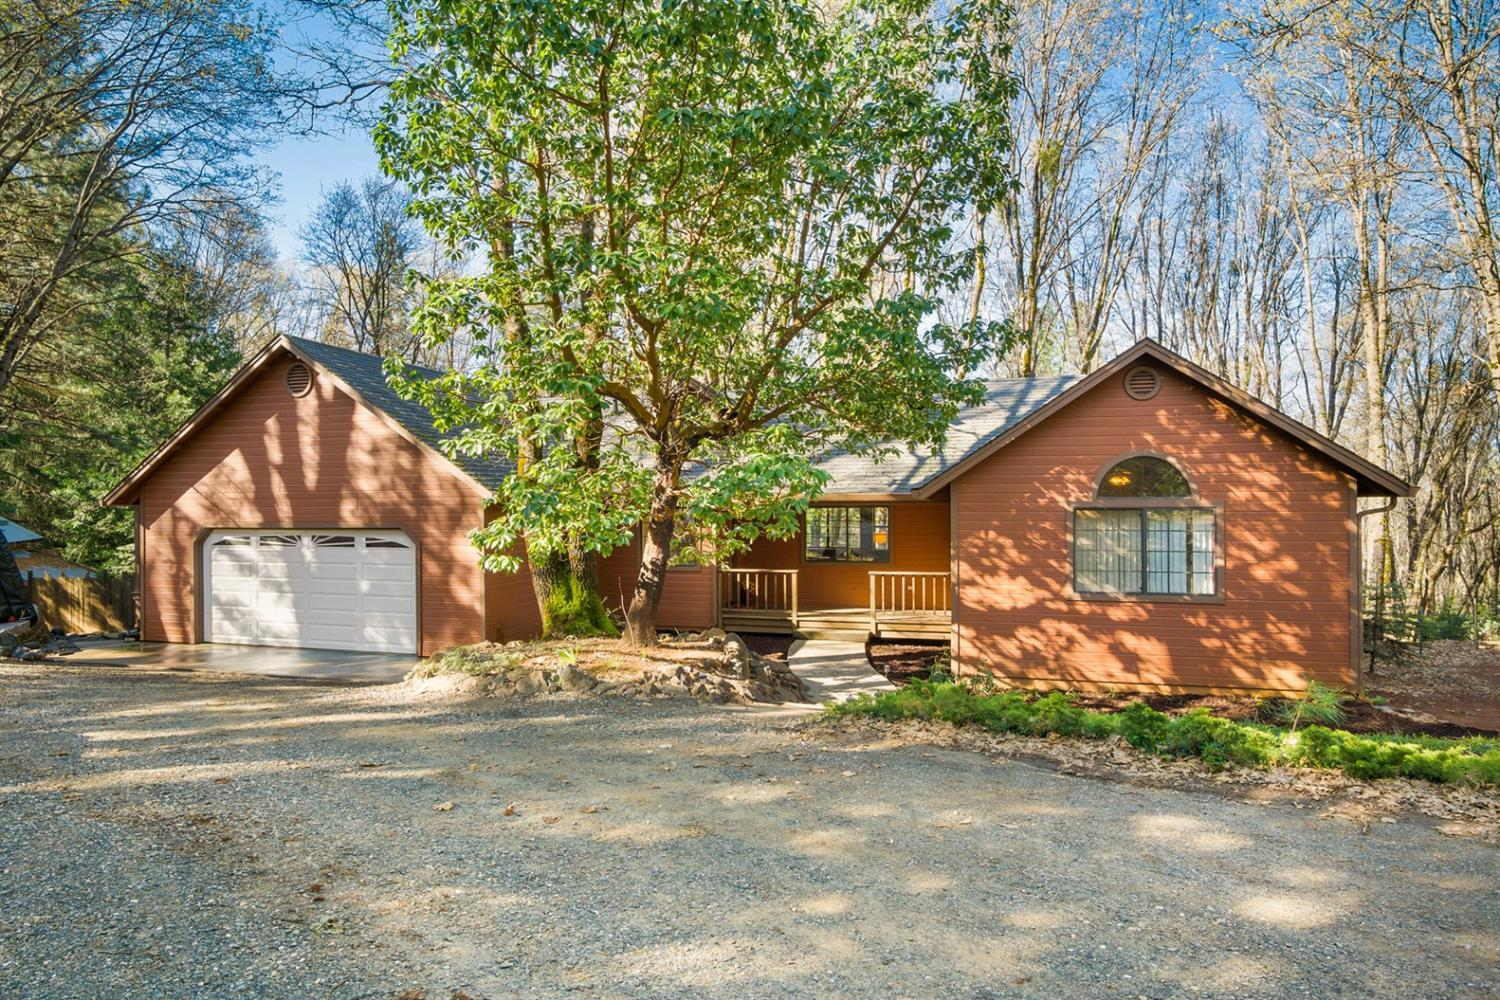 3 bed / 2 baths Home in Nevada City for $499,500